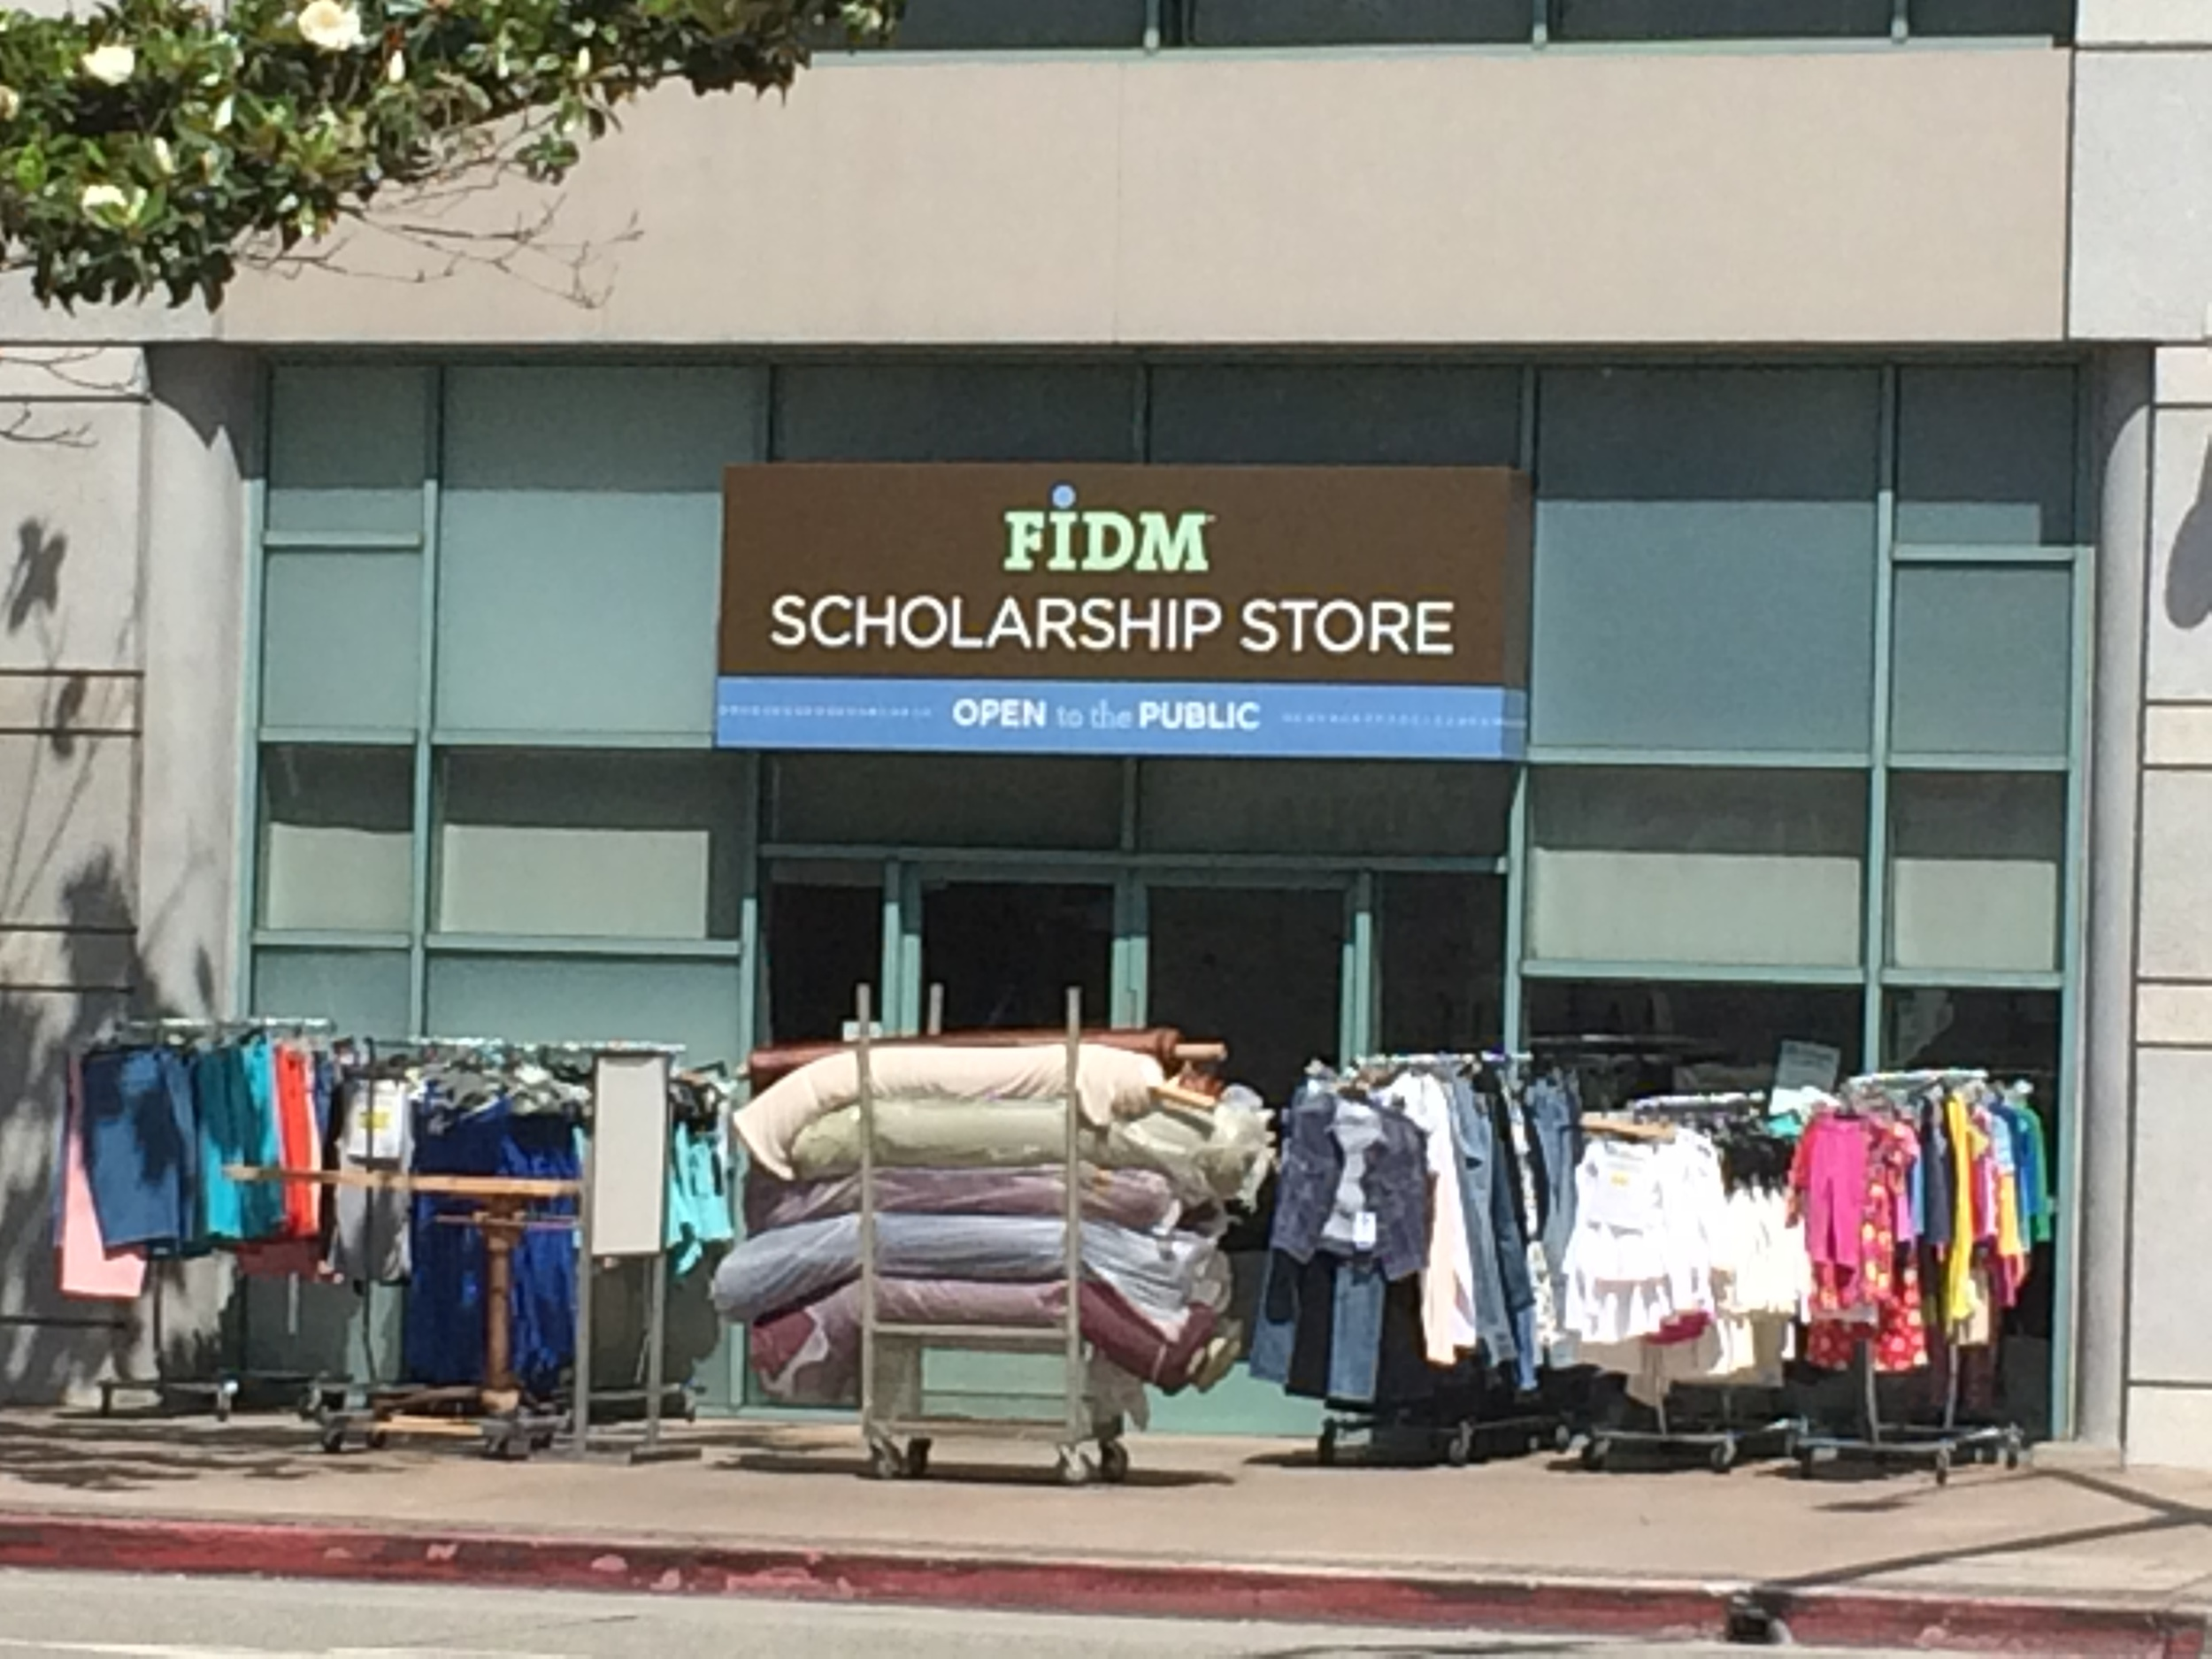 The FIDM Scholarship store.